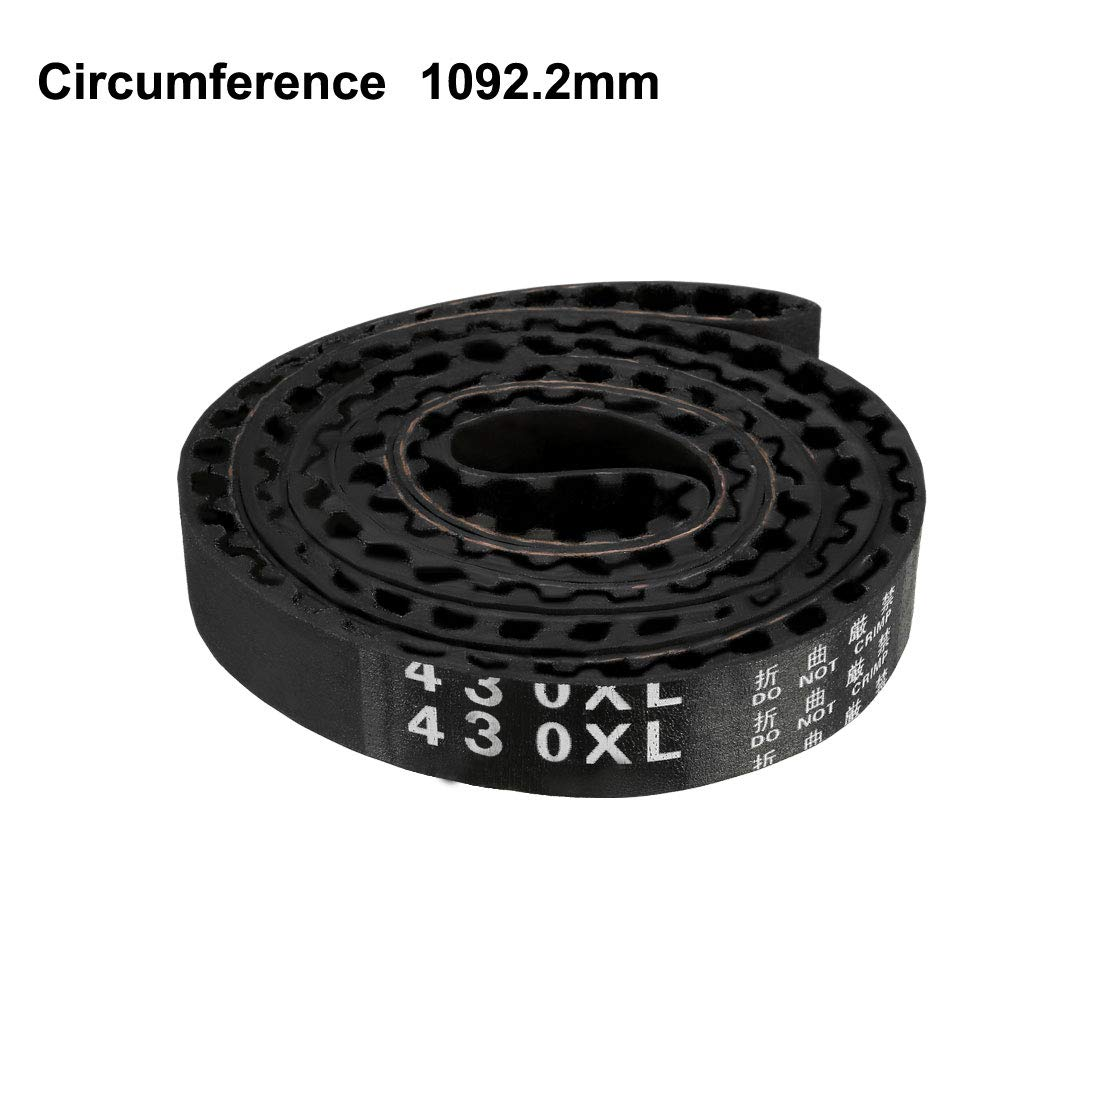 uxcell 430XL Rubber Timing Belt Synchronous Closed Loop Timing Belt Pulleys 10mm Width a17041800ux2158